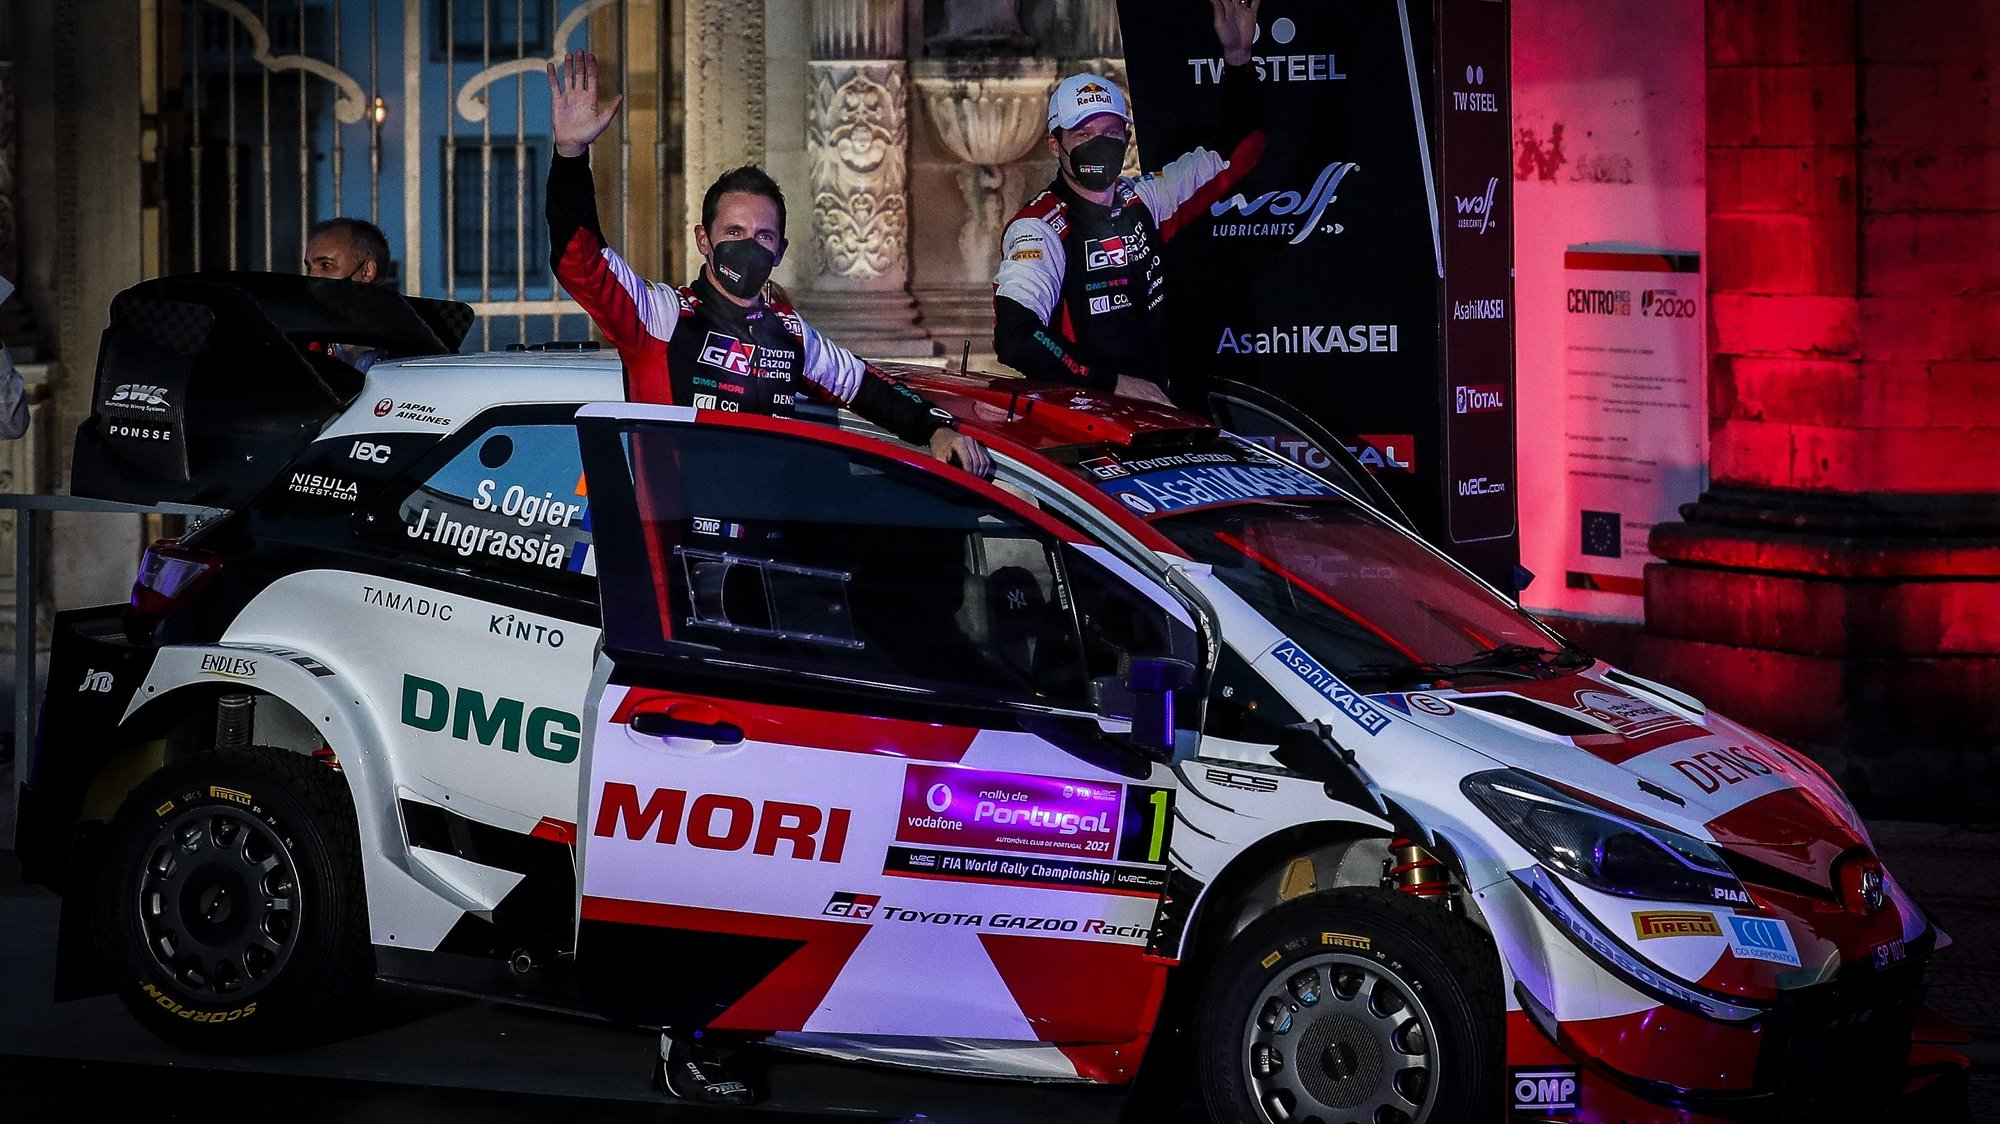 Sebastien Ogier of France drives his Toyota Yaris WRC during the ceremonial start on the first day of the Rally of Portugal as part of the World Rally Championship (WRC) in Coimbra, Portugal, 20 May 2021. PAULO NOVAIS/LUSA